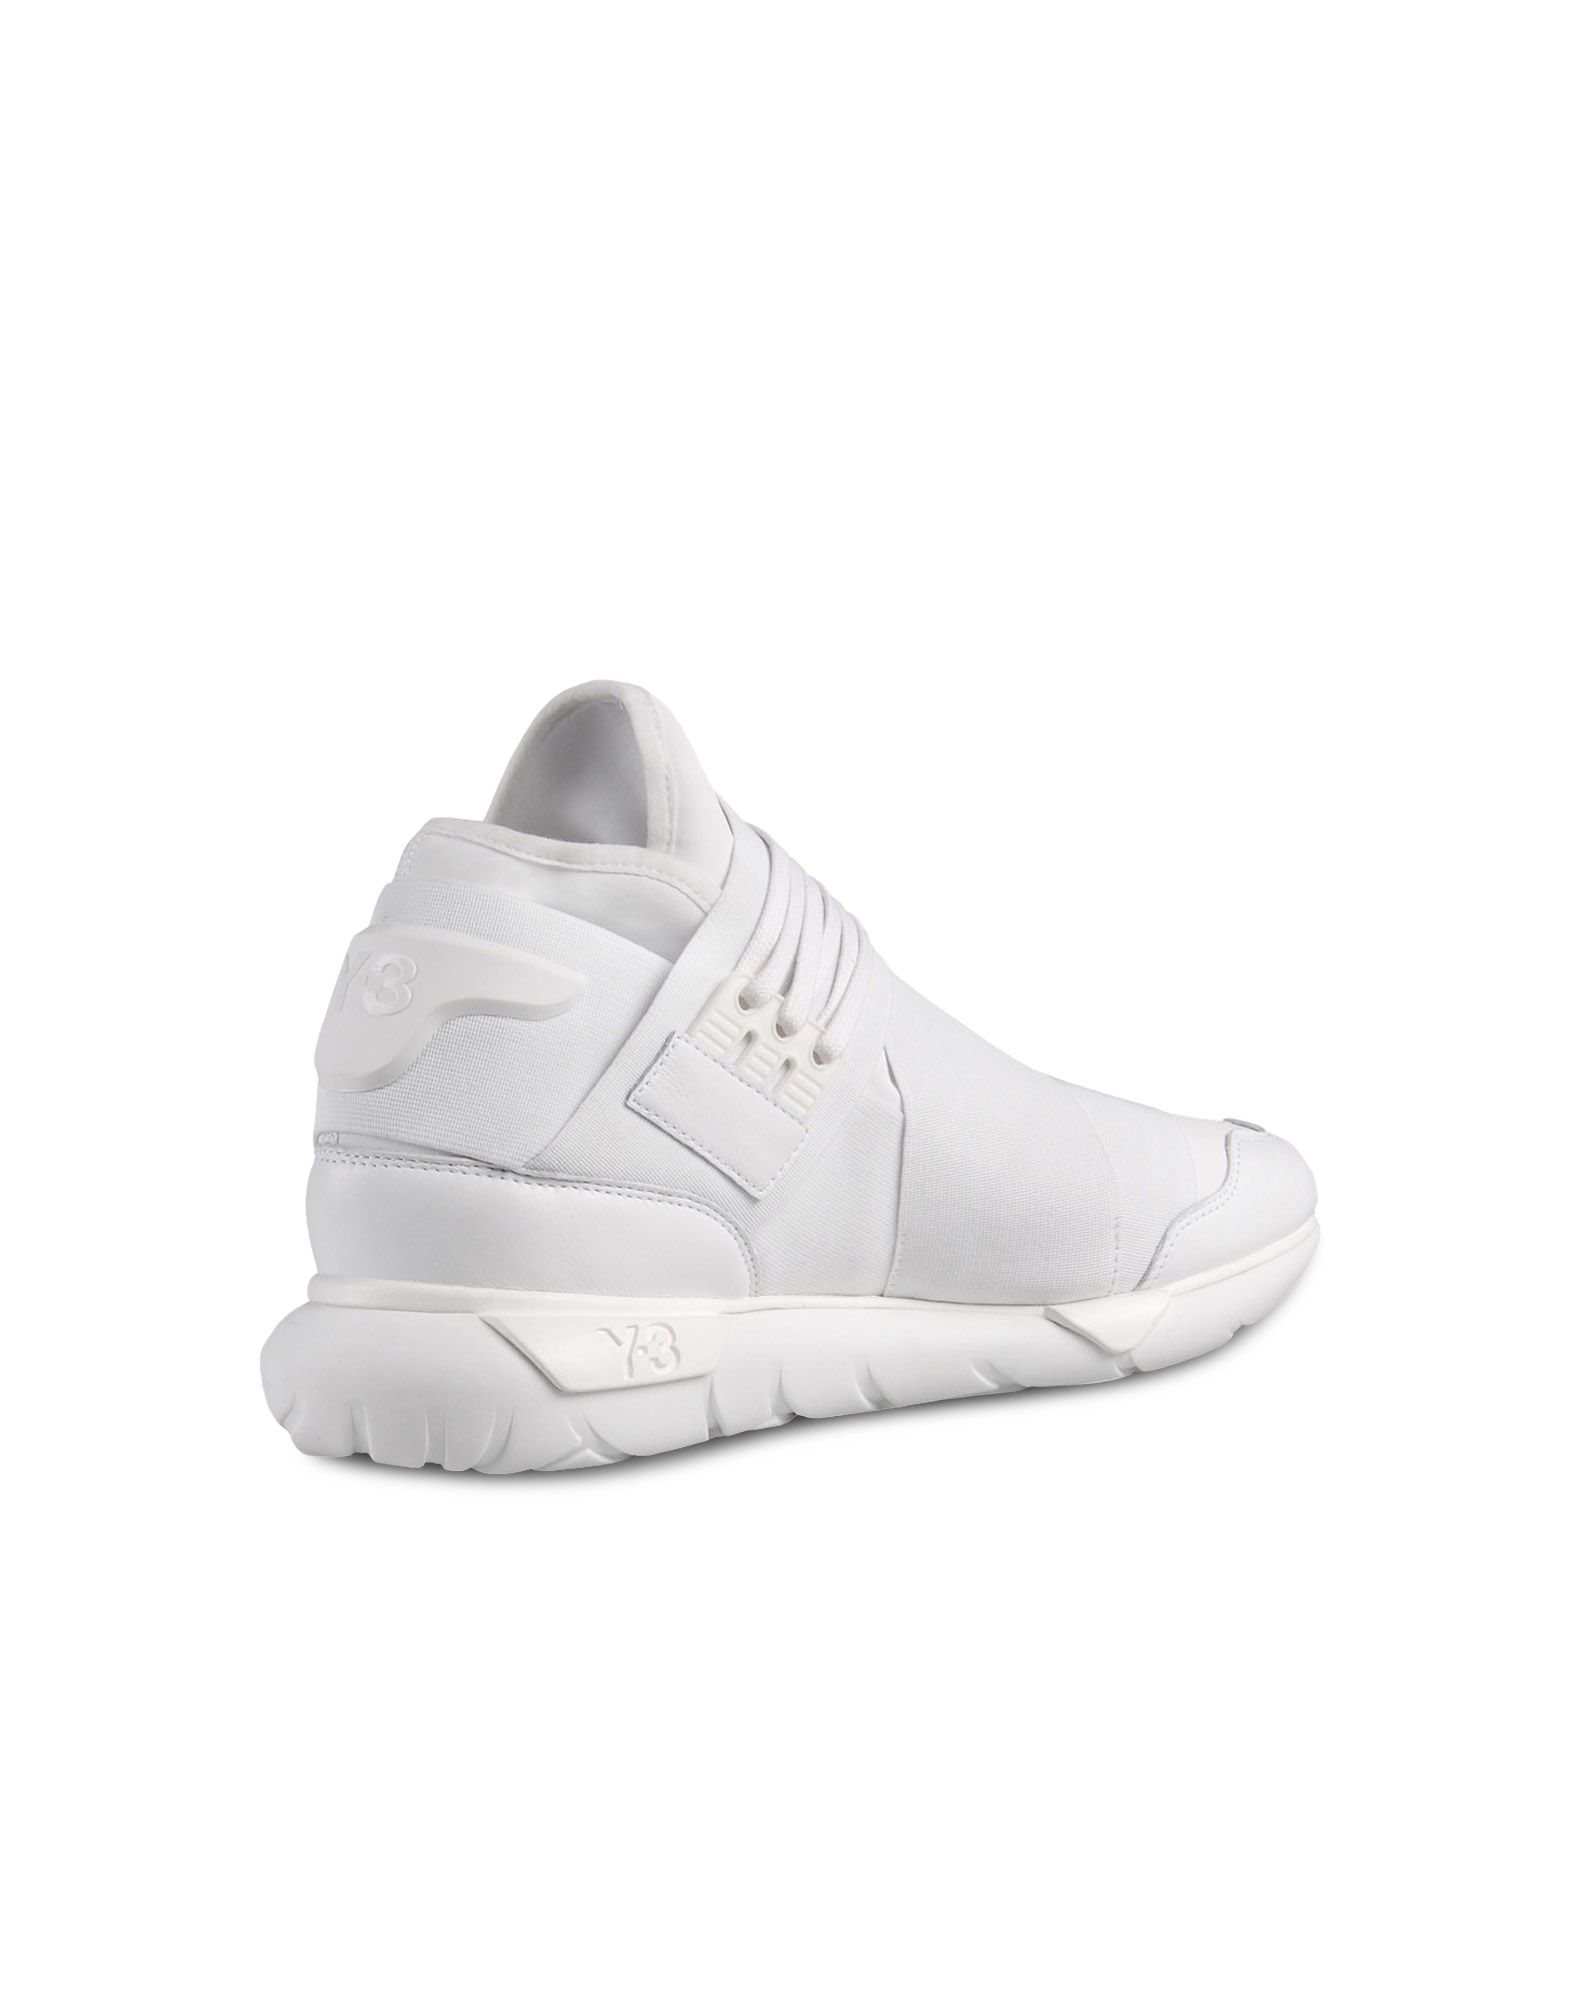 Y-3 QASA HIGH SHOES unisex Y-3 adidas